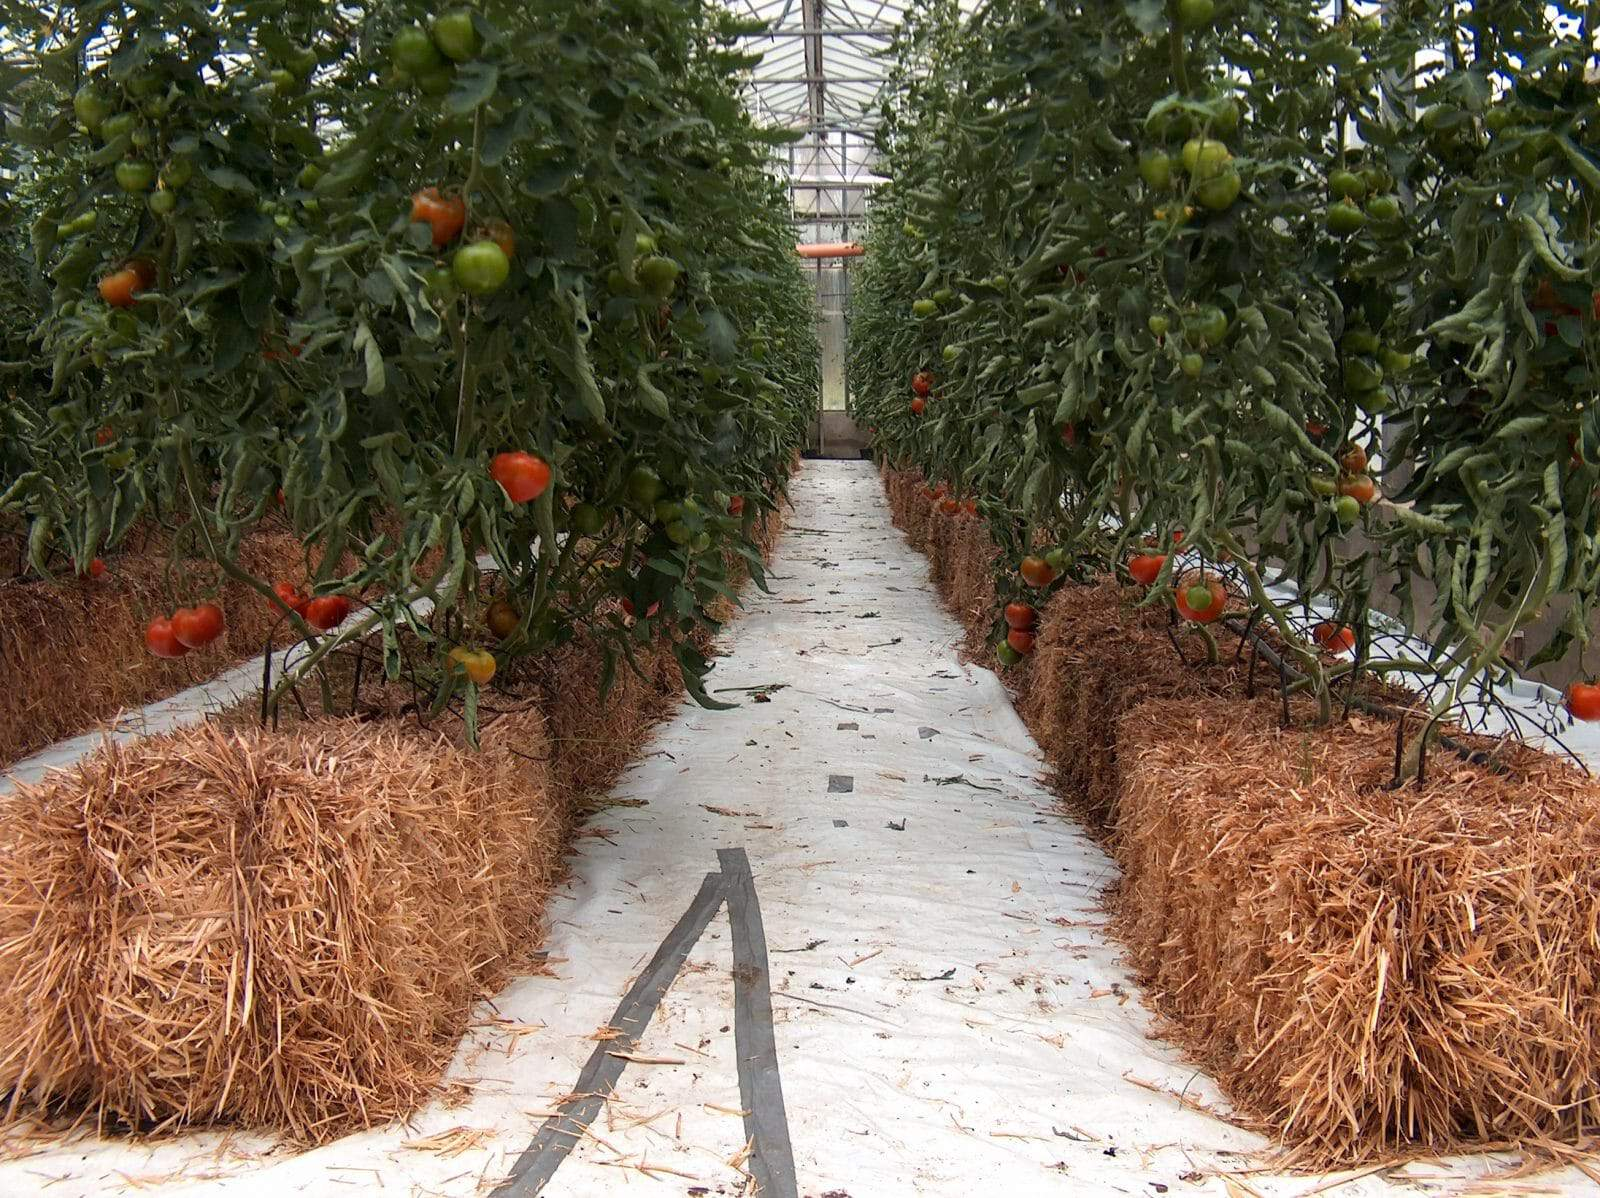 tomatoes being grown using hydroponics system over the straw bales